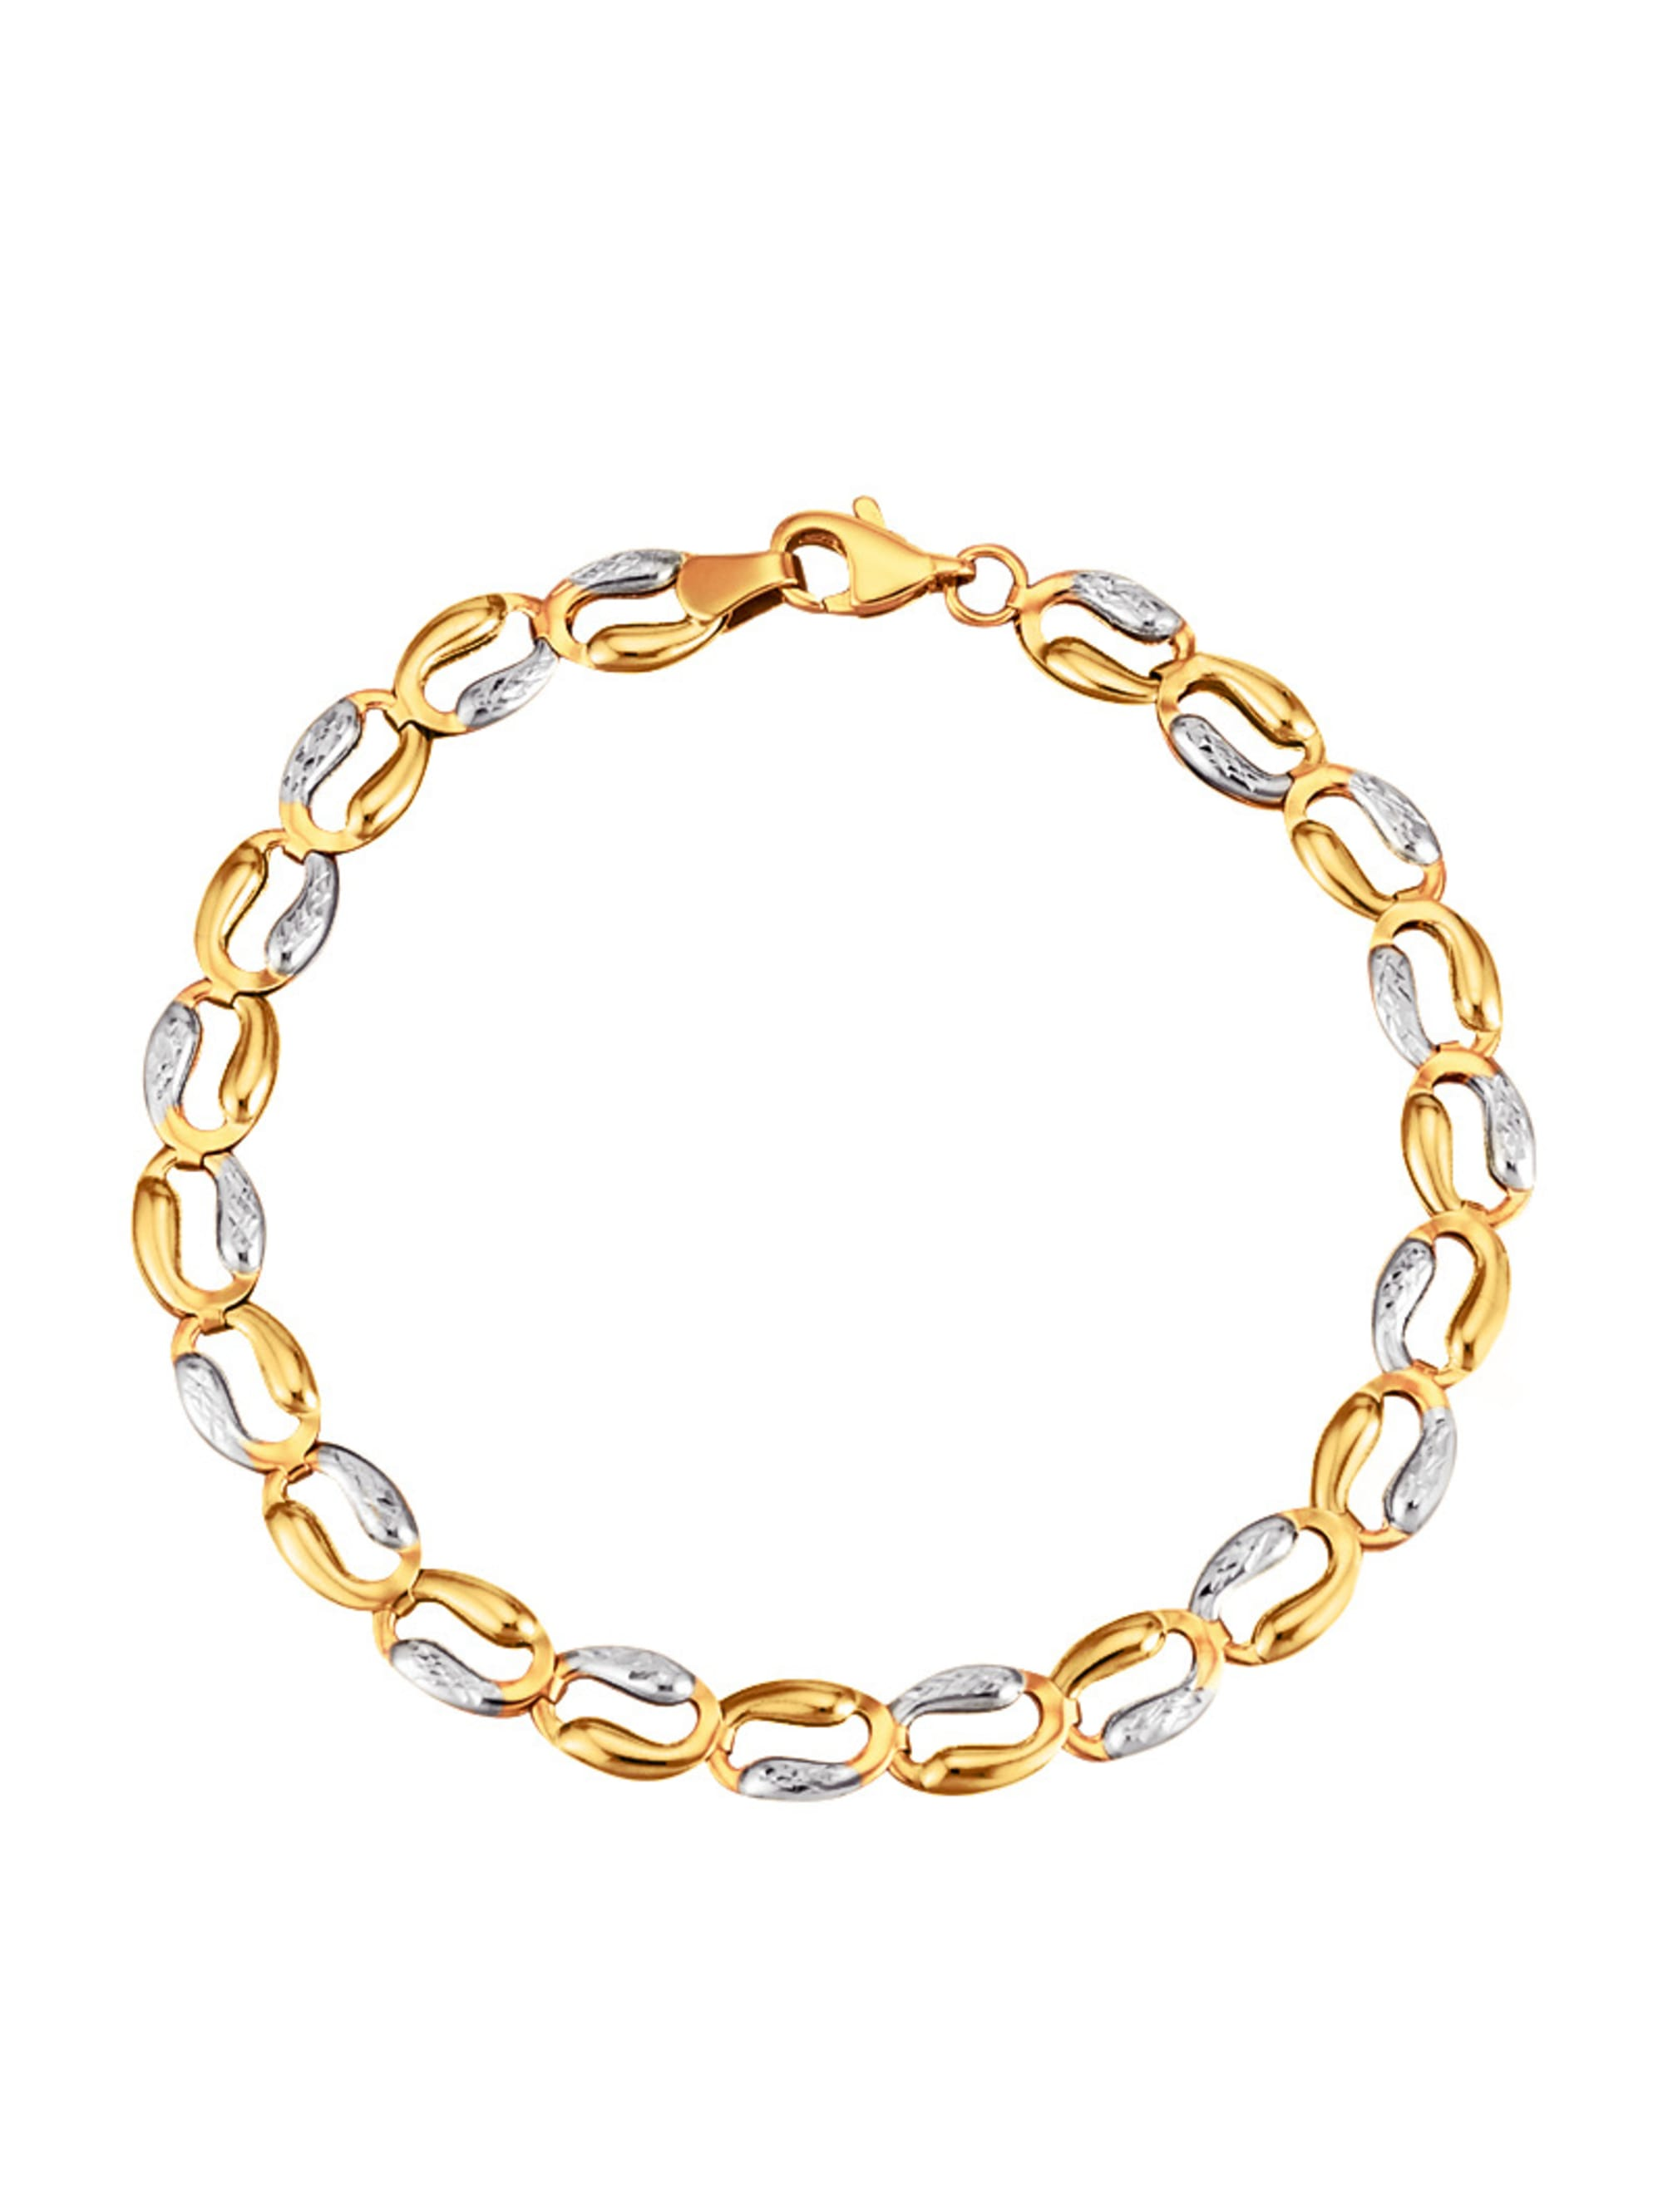 Armband in Gelbgold 375 f7bfK